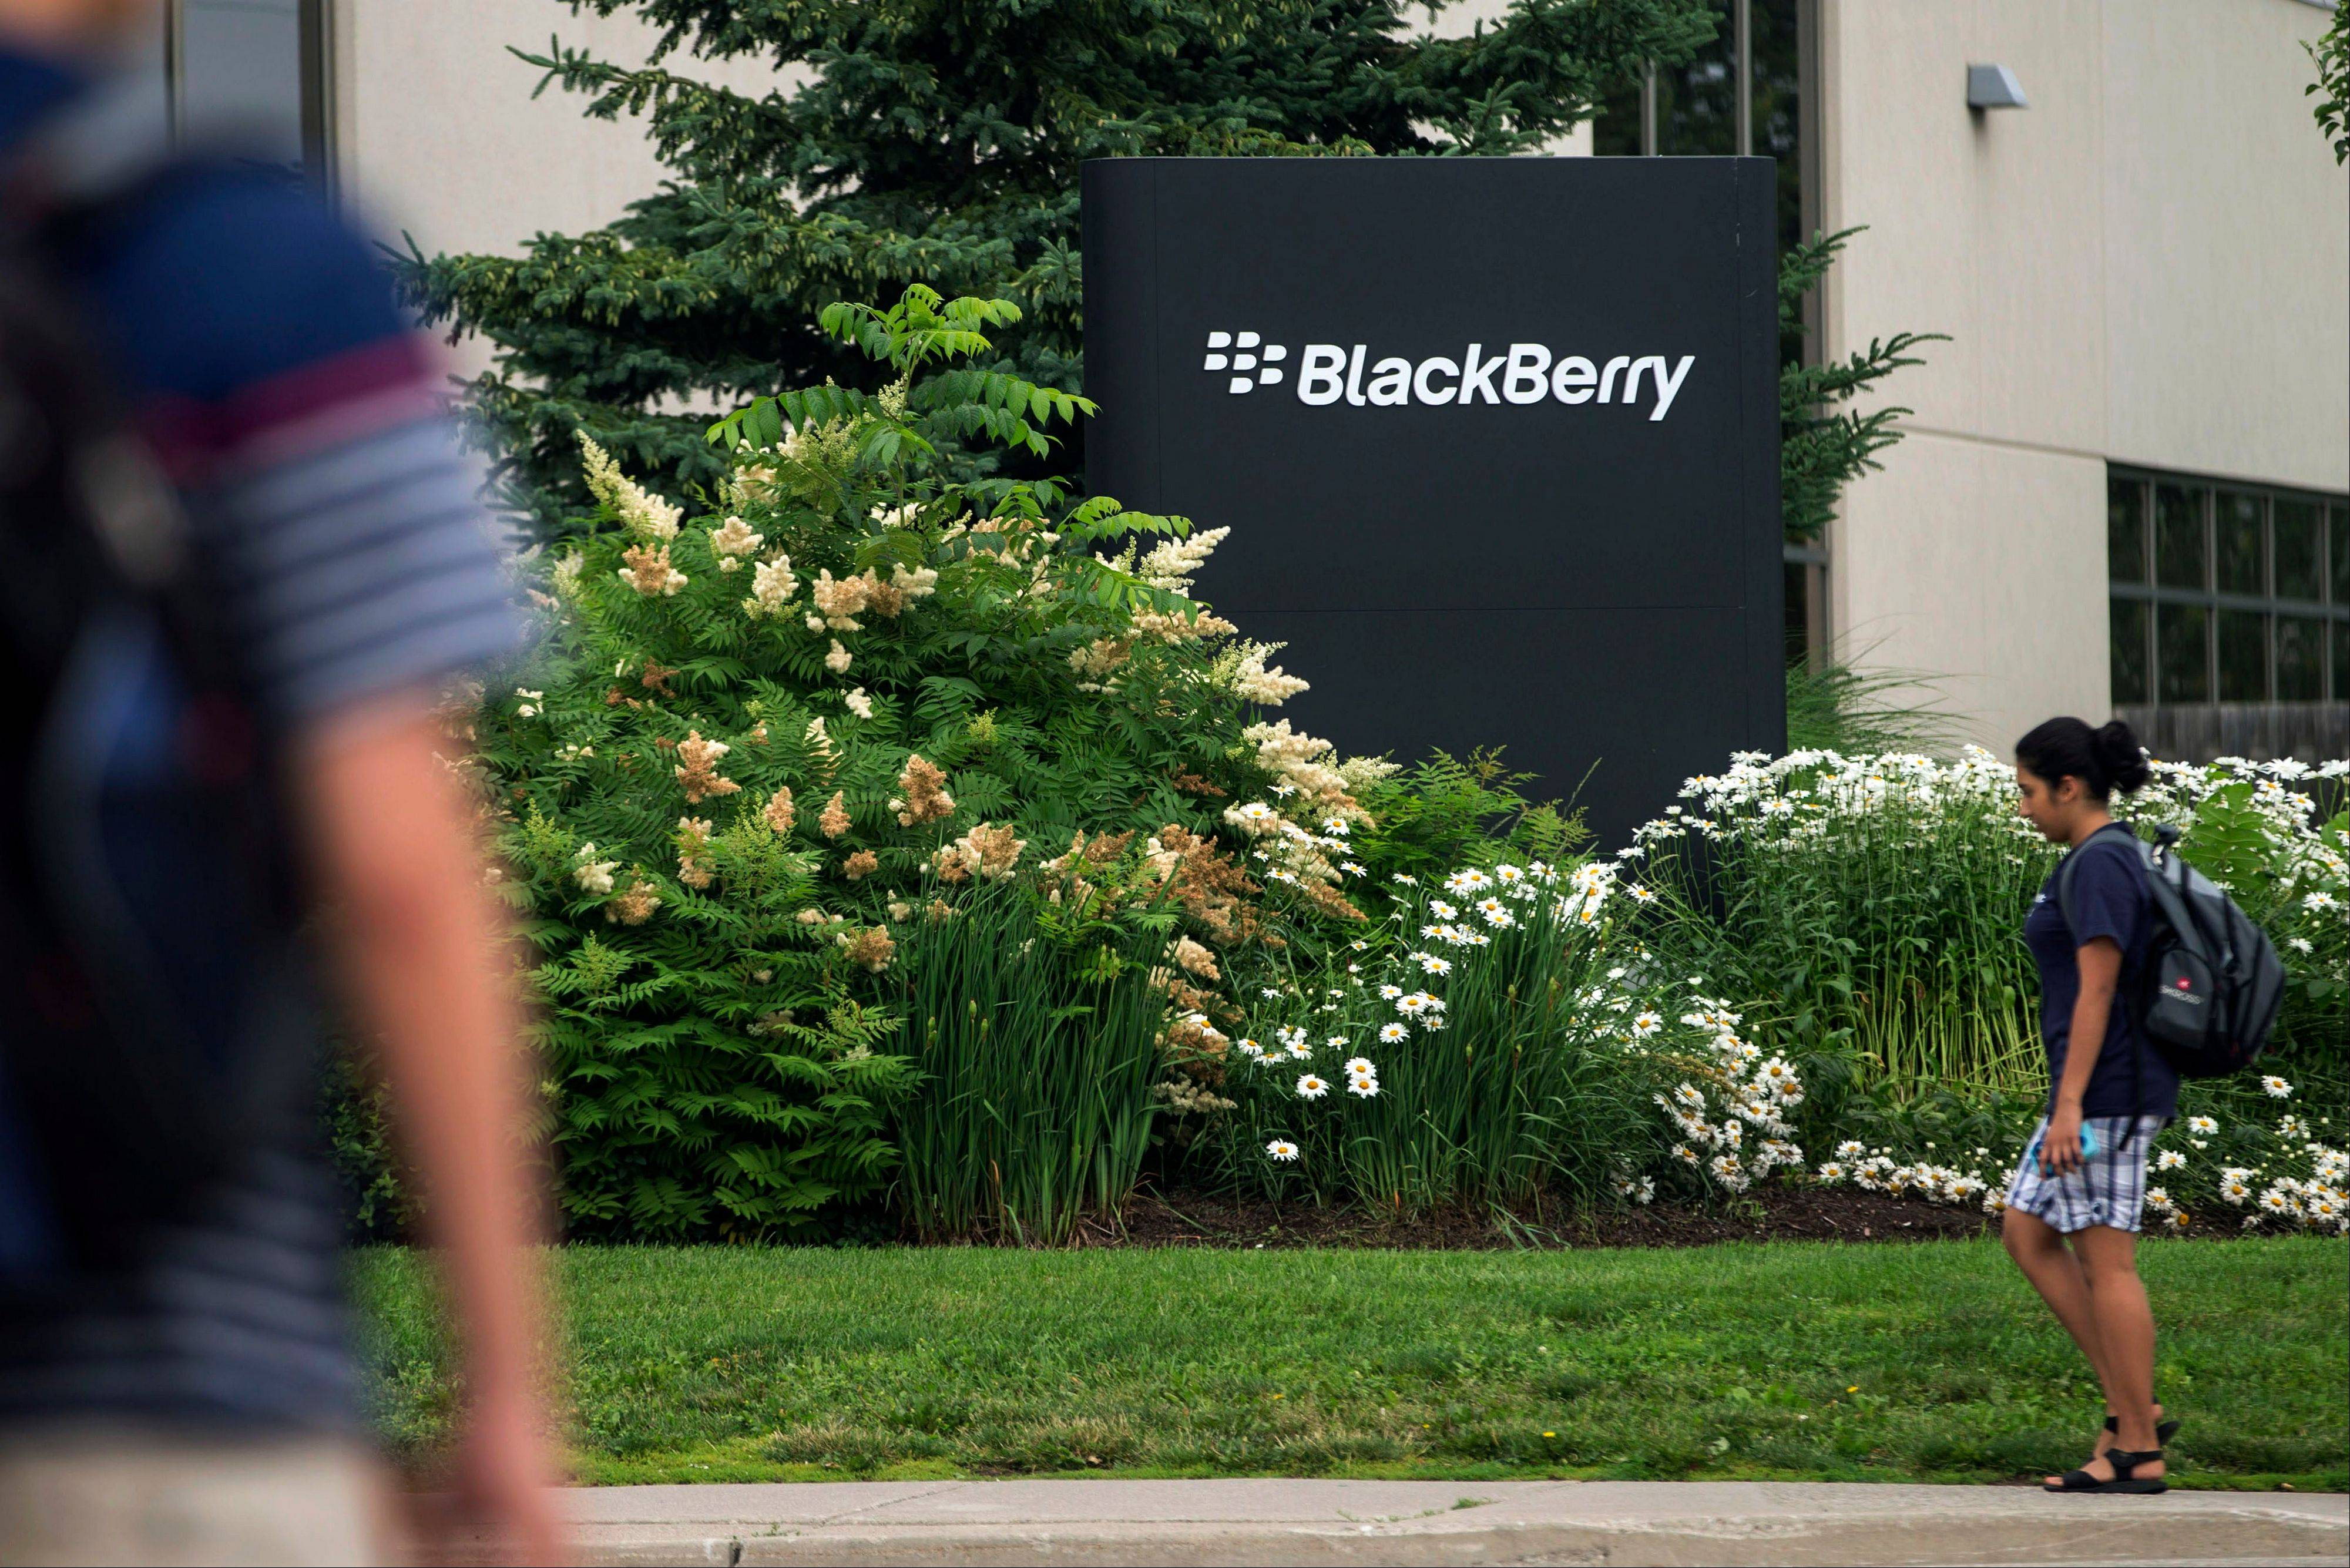 Associated Press/July 9People walk near BlackBerry's headquarters in Waterloo, Ontario.